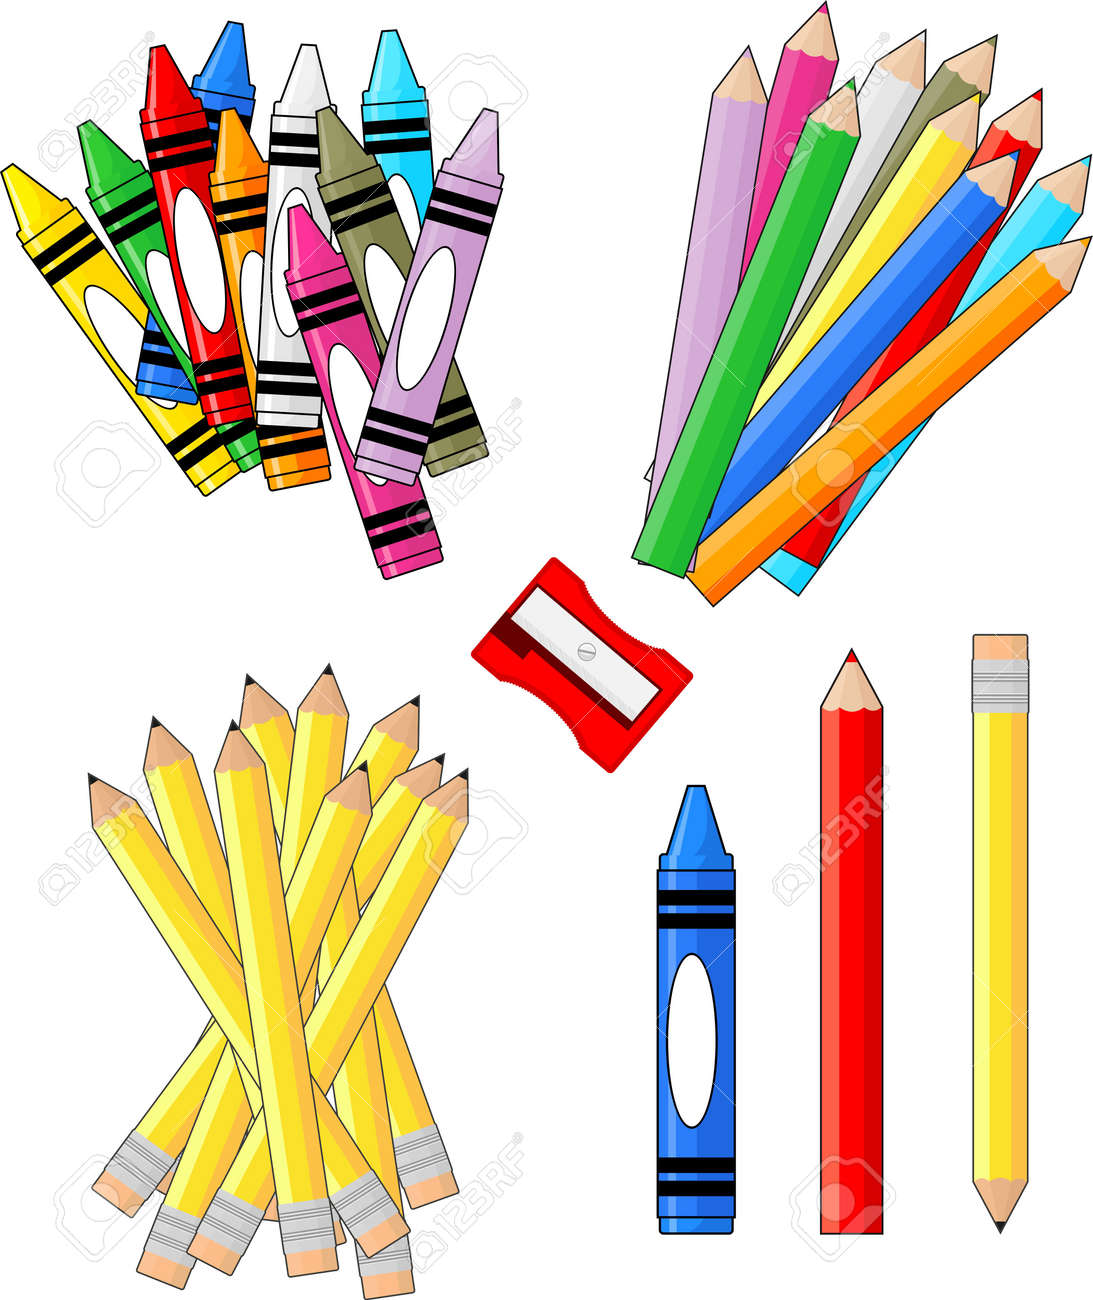 school supplies groups clip art isolated on white background rh 123rf com free clipart of school supplies free clipart images of school supplies